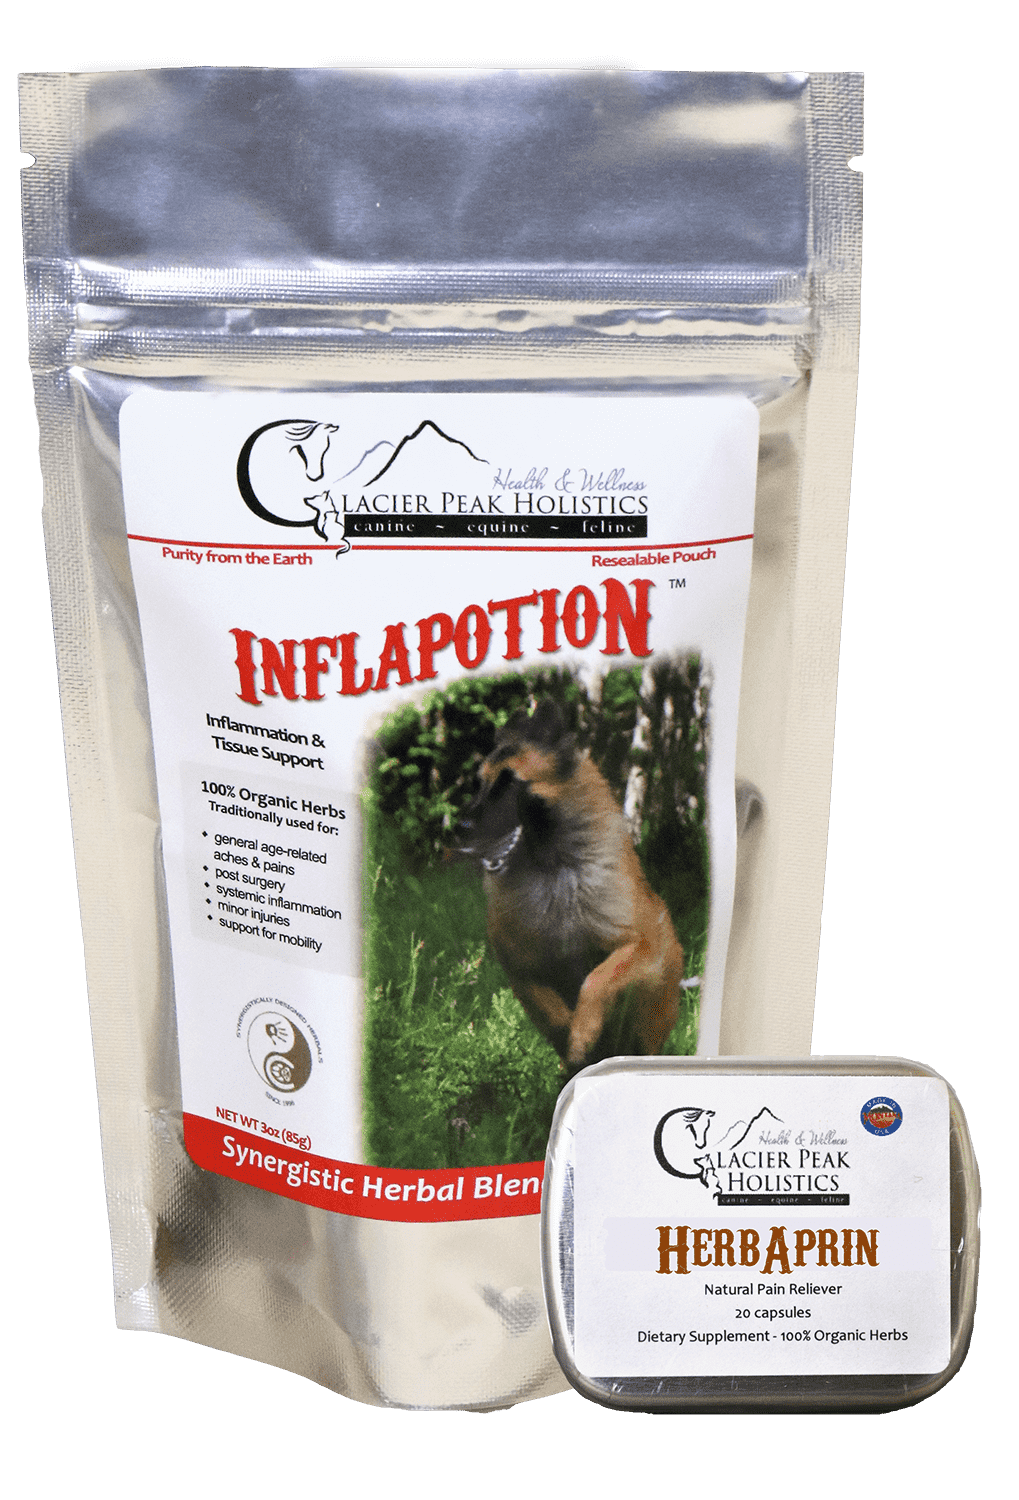 Inflapotion 3oz Dog & HerbAprin 20 cap Combo